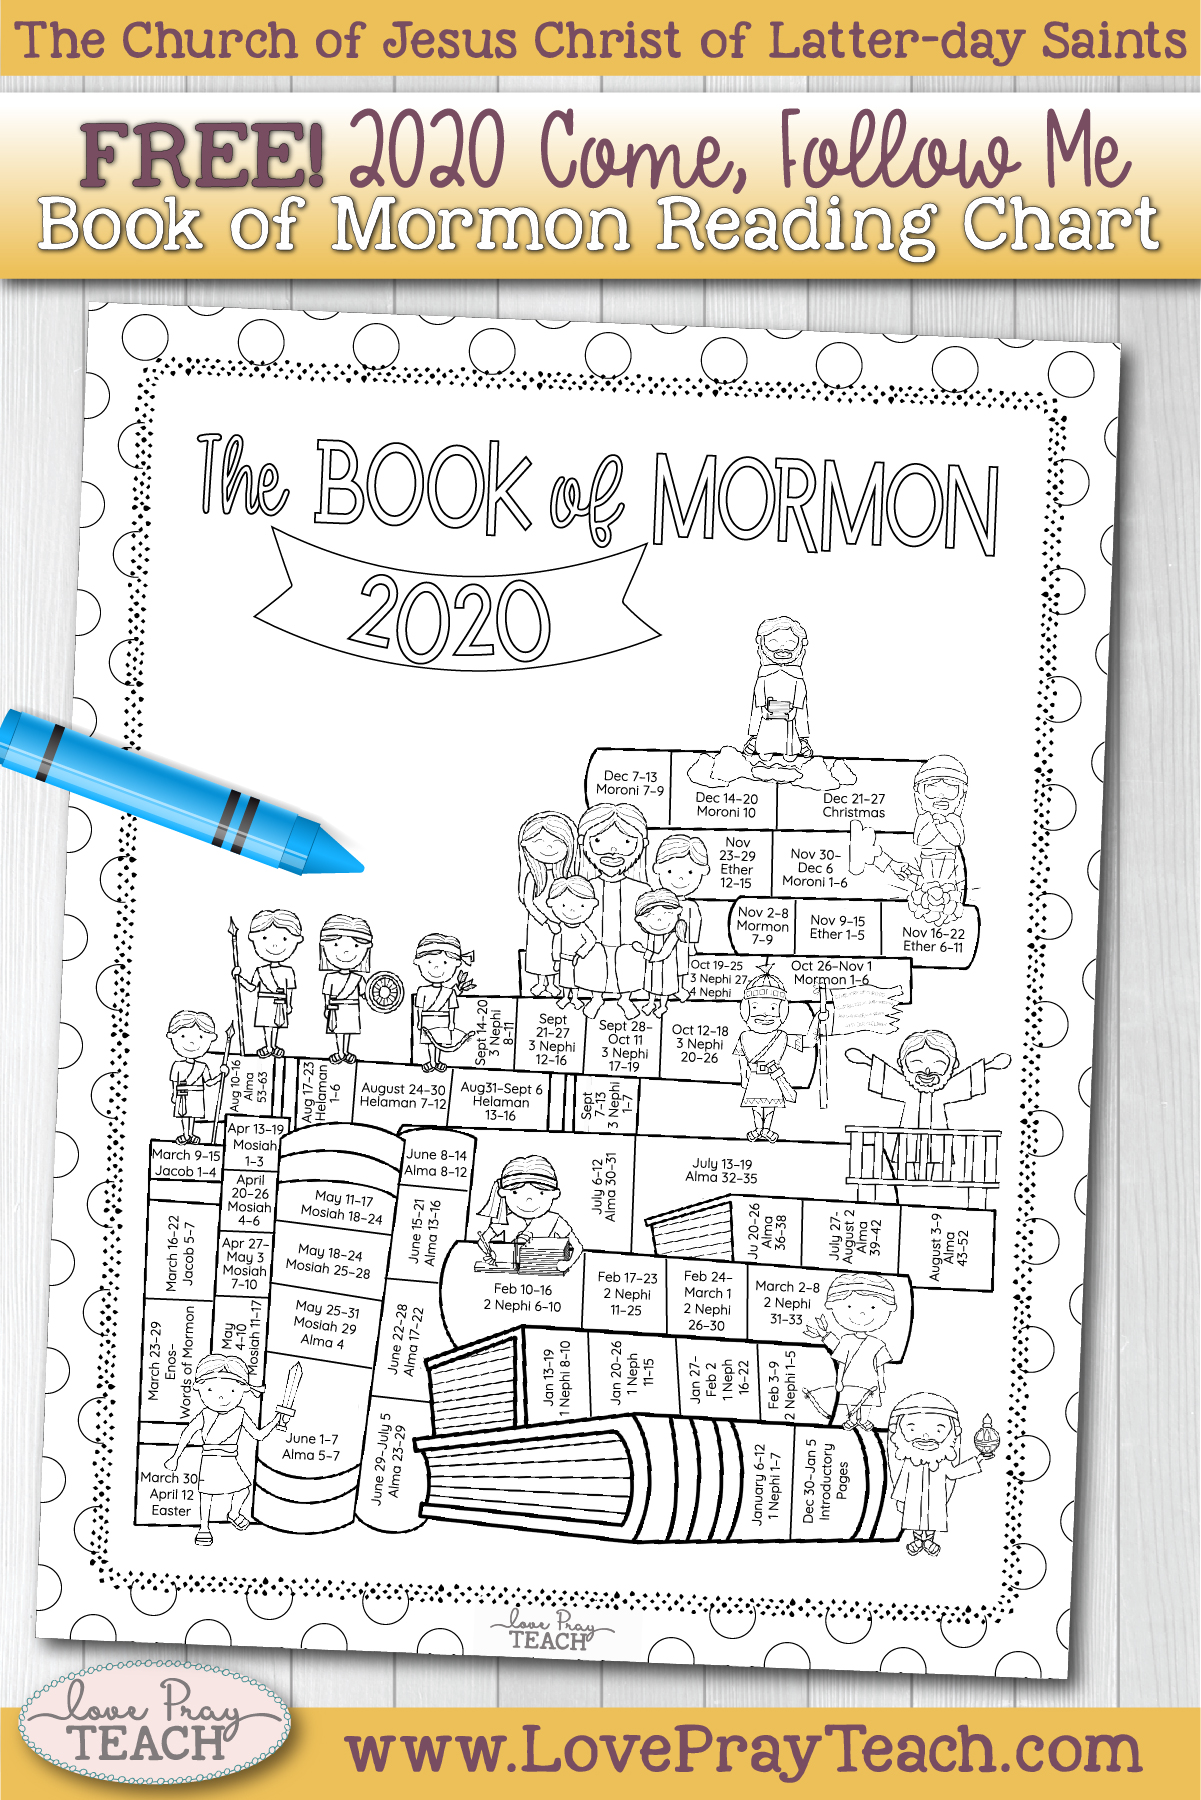 free-2020-come-follow-me-book-mormon-reading-chart